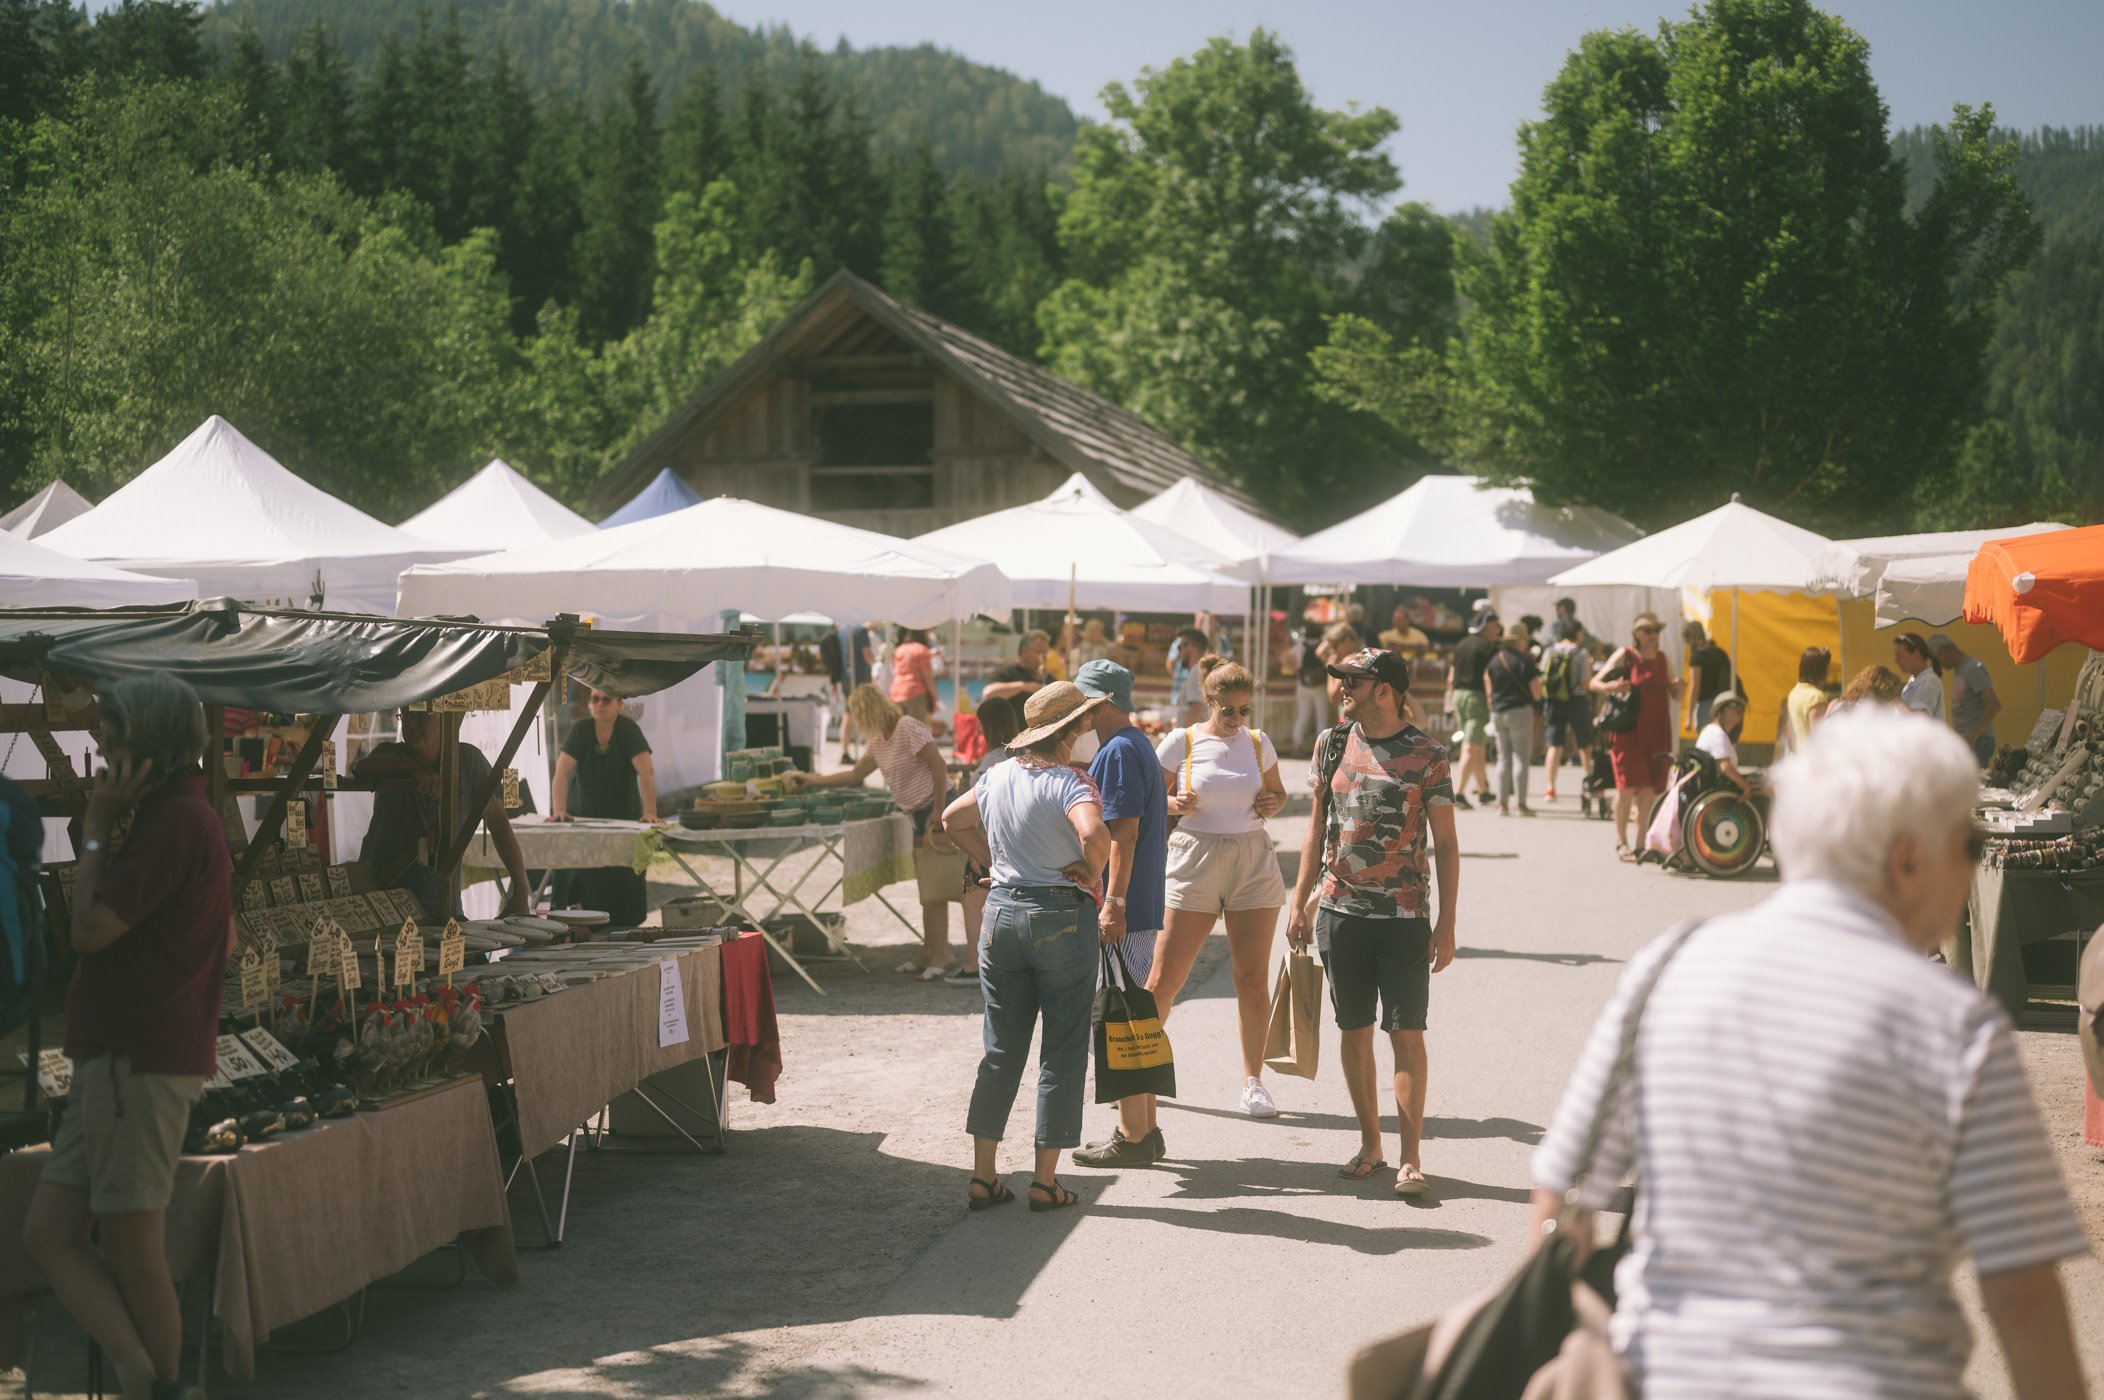 Weissensee weekly market - easily reached by bicycle from Strandhotel Weissensee